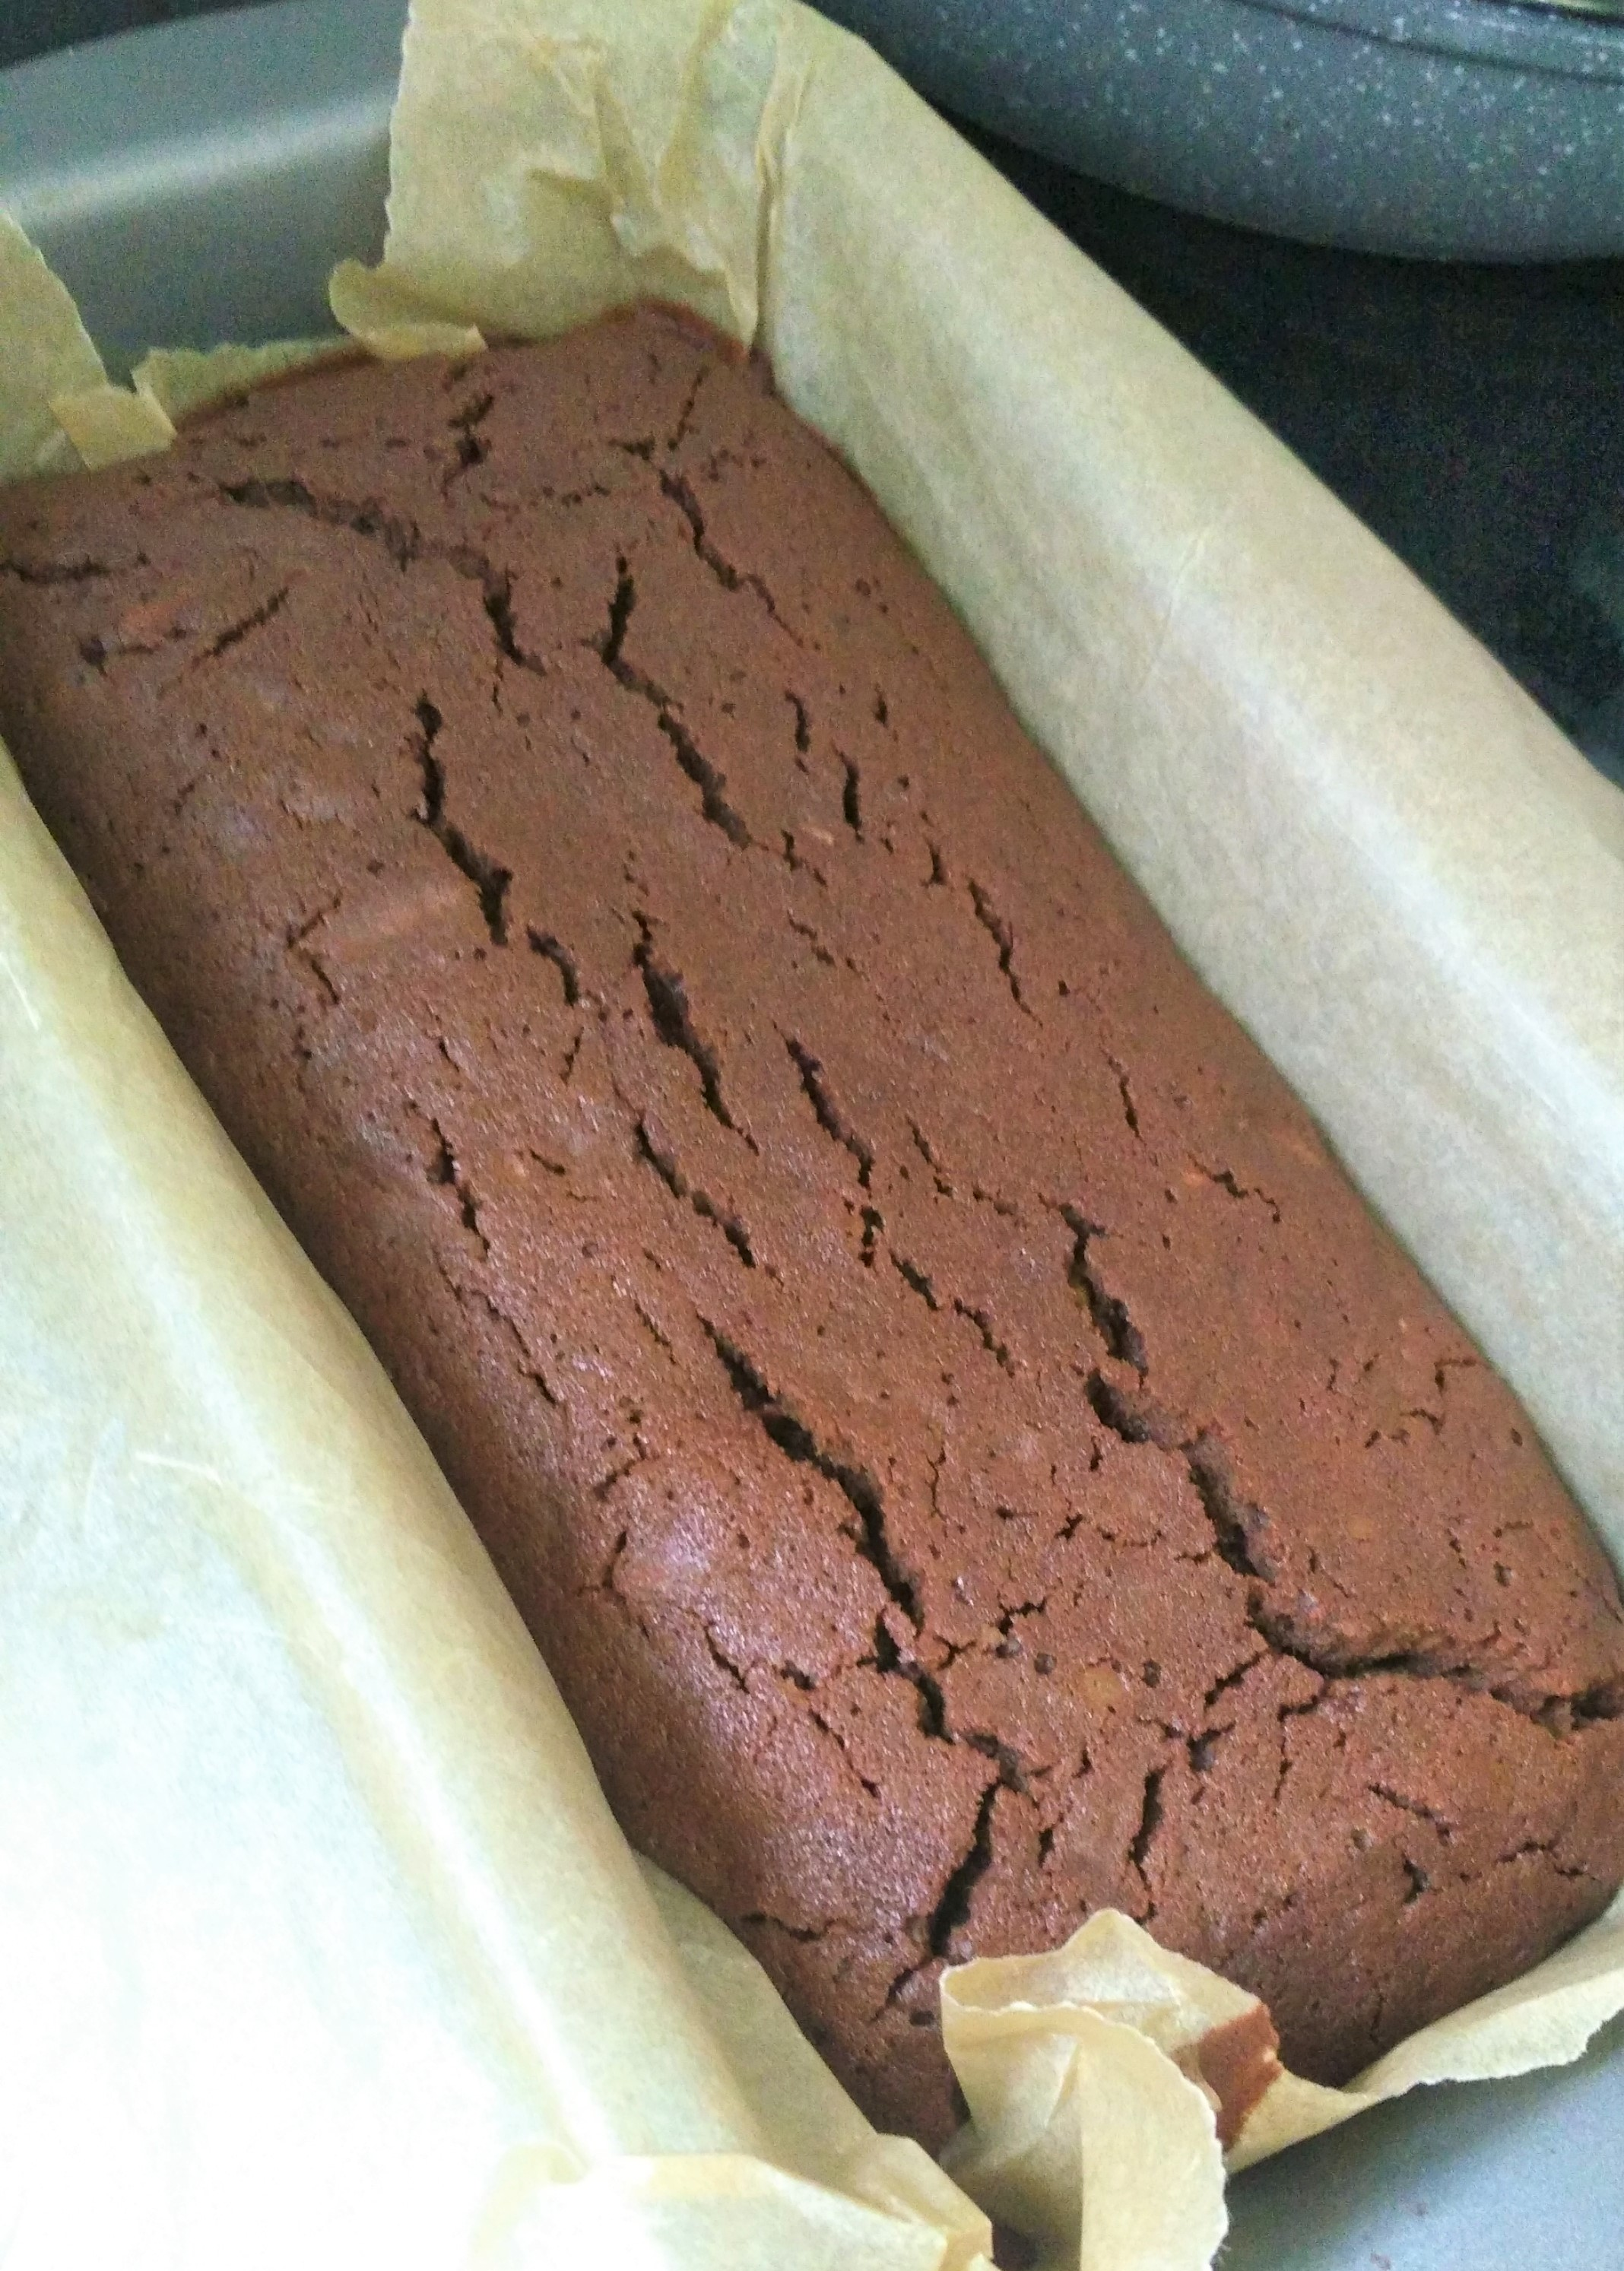 vegan courgette chocolate brownies in a loaf tin with baking paper fresh out of the oven showing the cracking on top when done